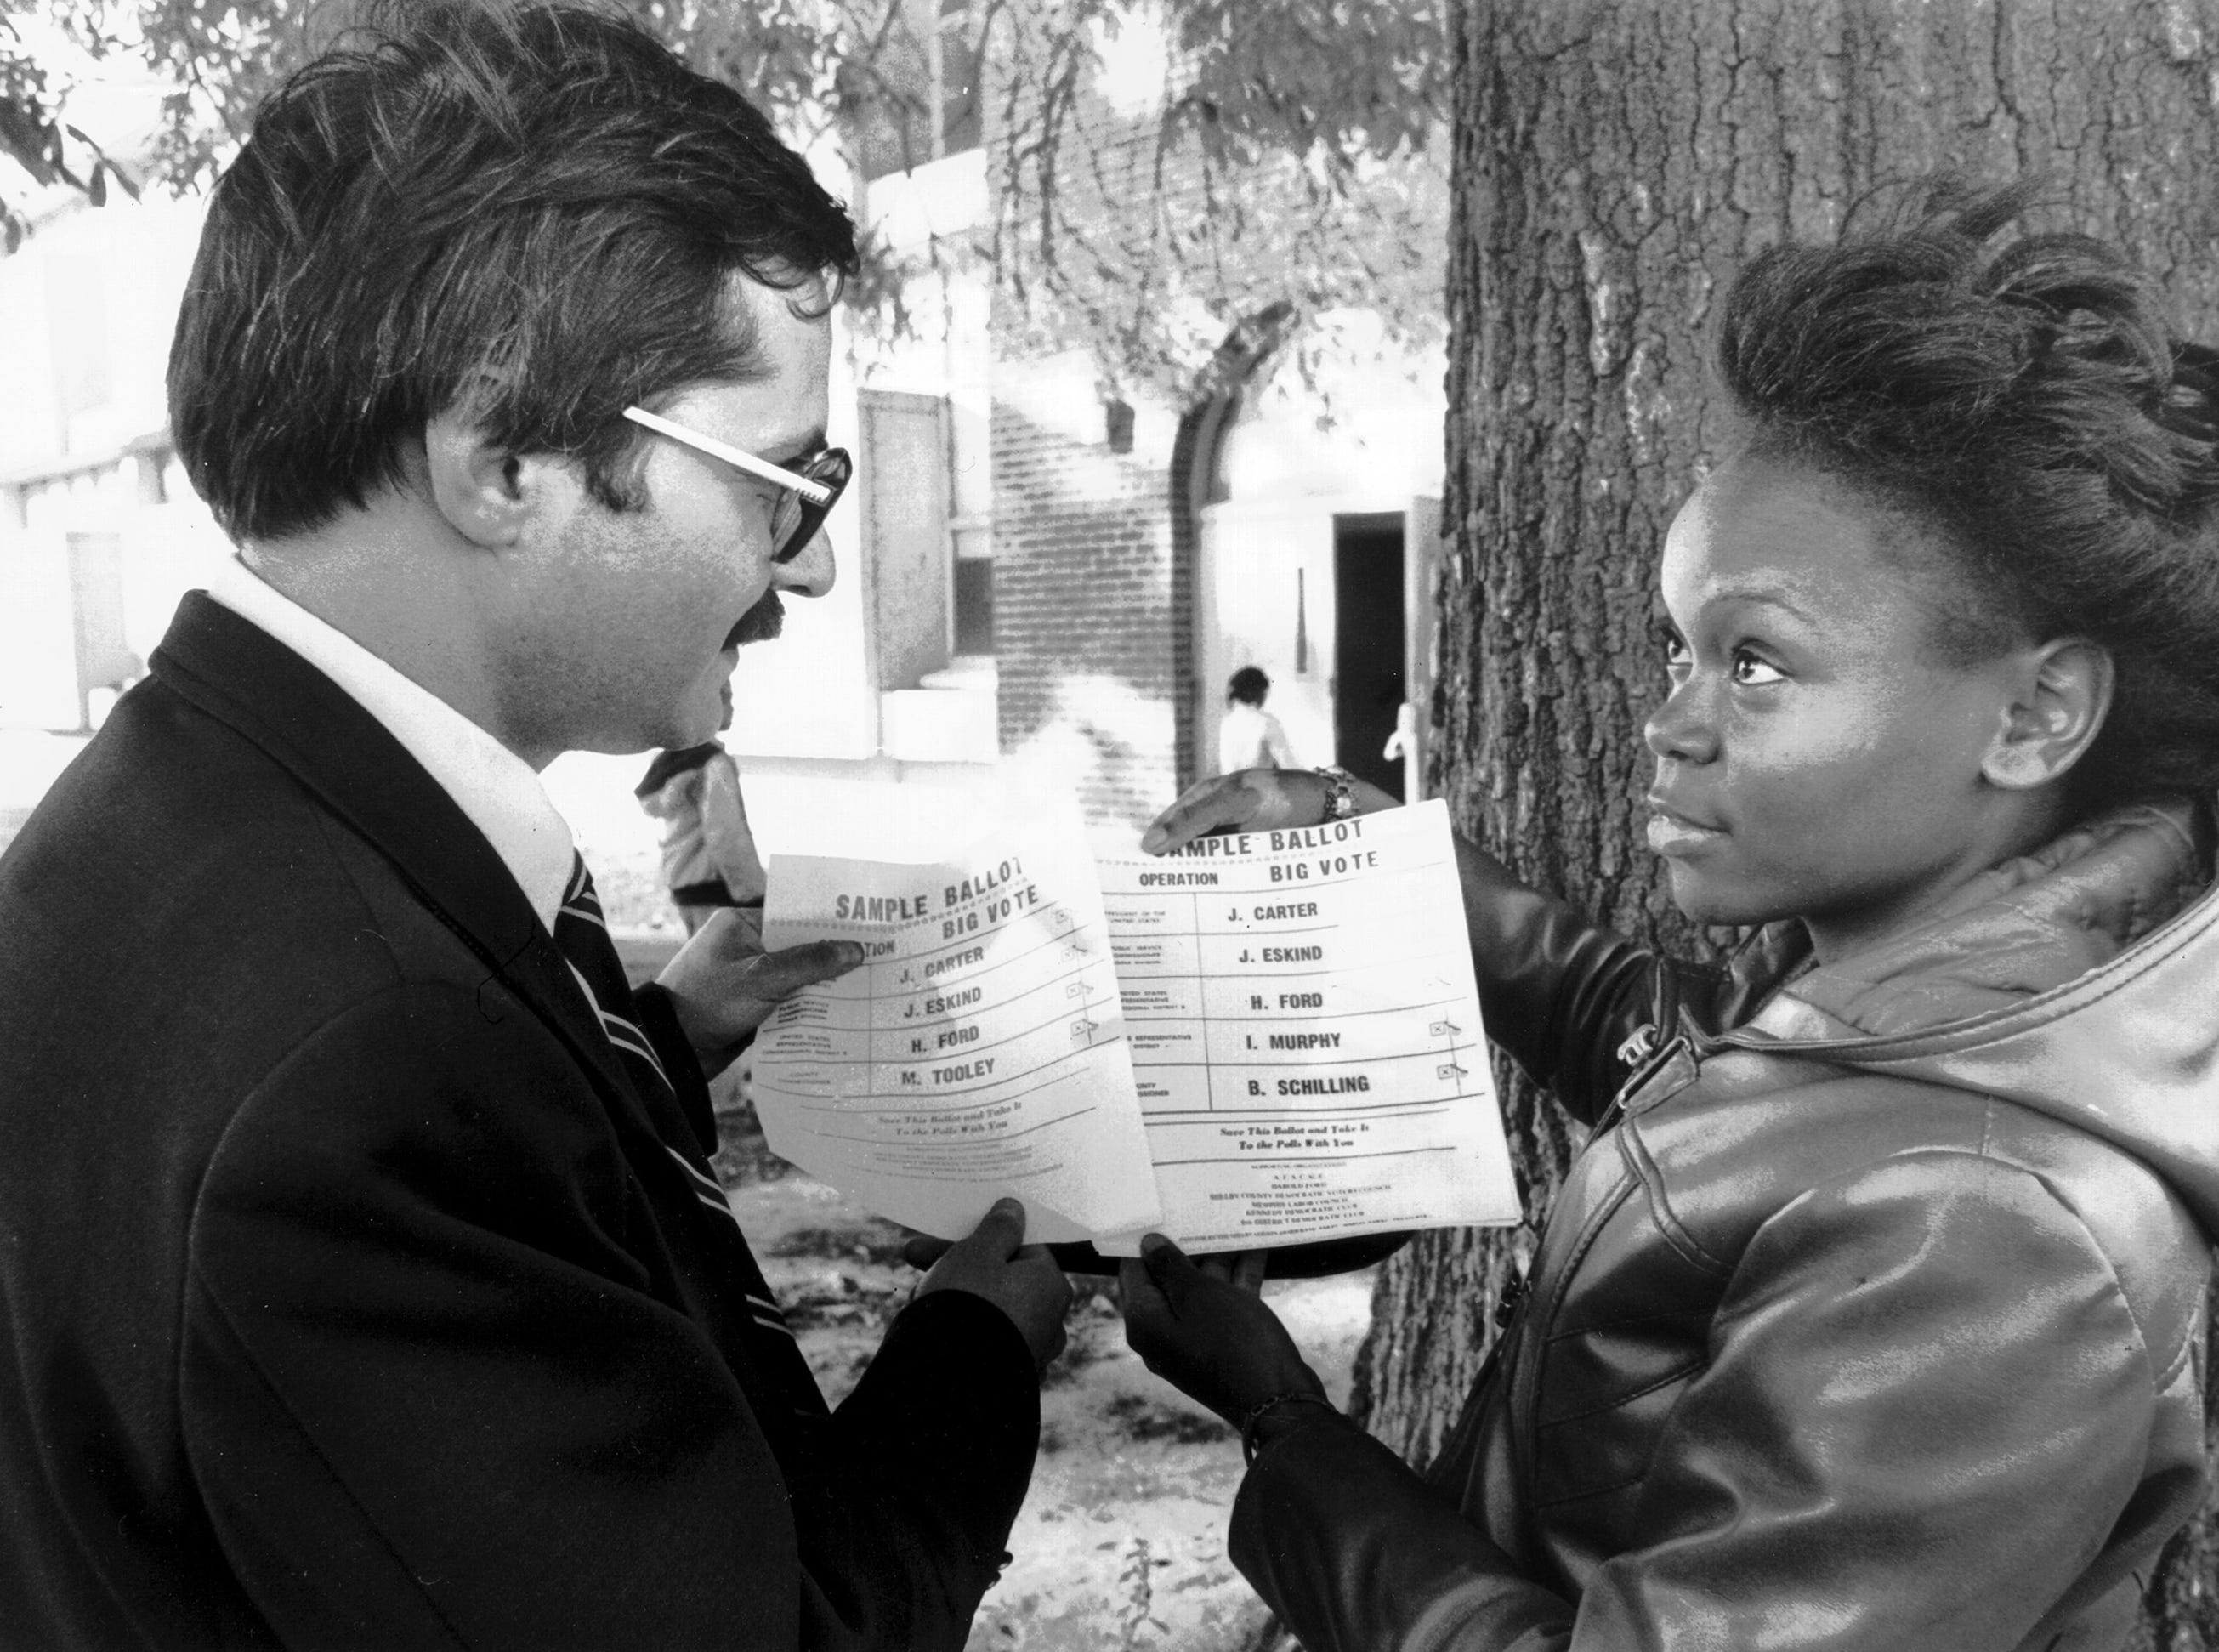 Peter Brown (left) and Bobbie Jean Moody examine sample ballots distributed in Ward 2 during elections held on November 4, 1980. The Democratic party routinely distributes sample ballots to voters, listing the names of their candidates; however, during this election, someone distributed bogus sample ballots that listed the names of some Republicans. It was unknown who distributed the bogus pages.